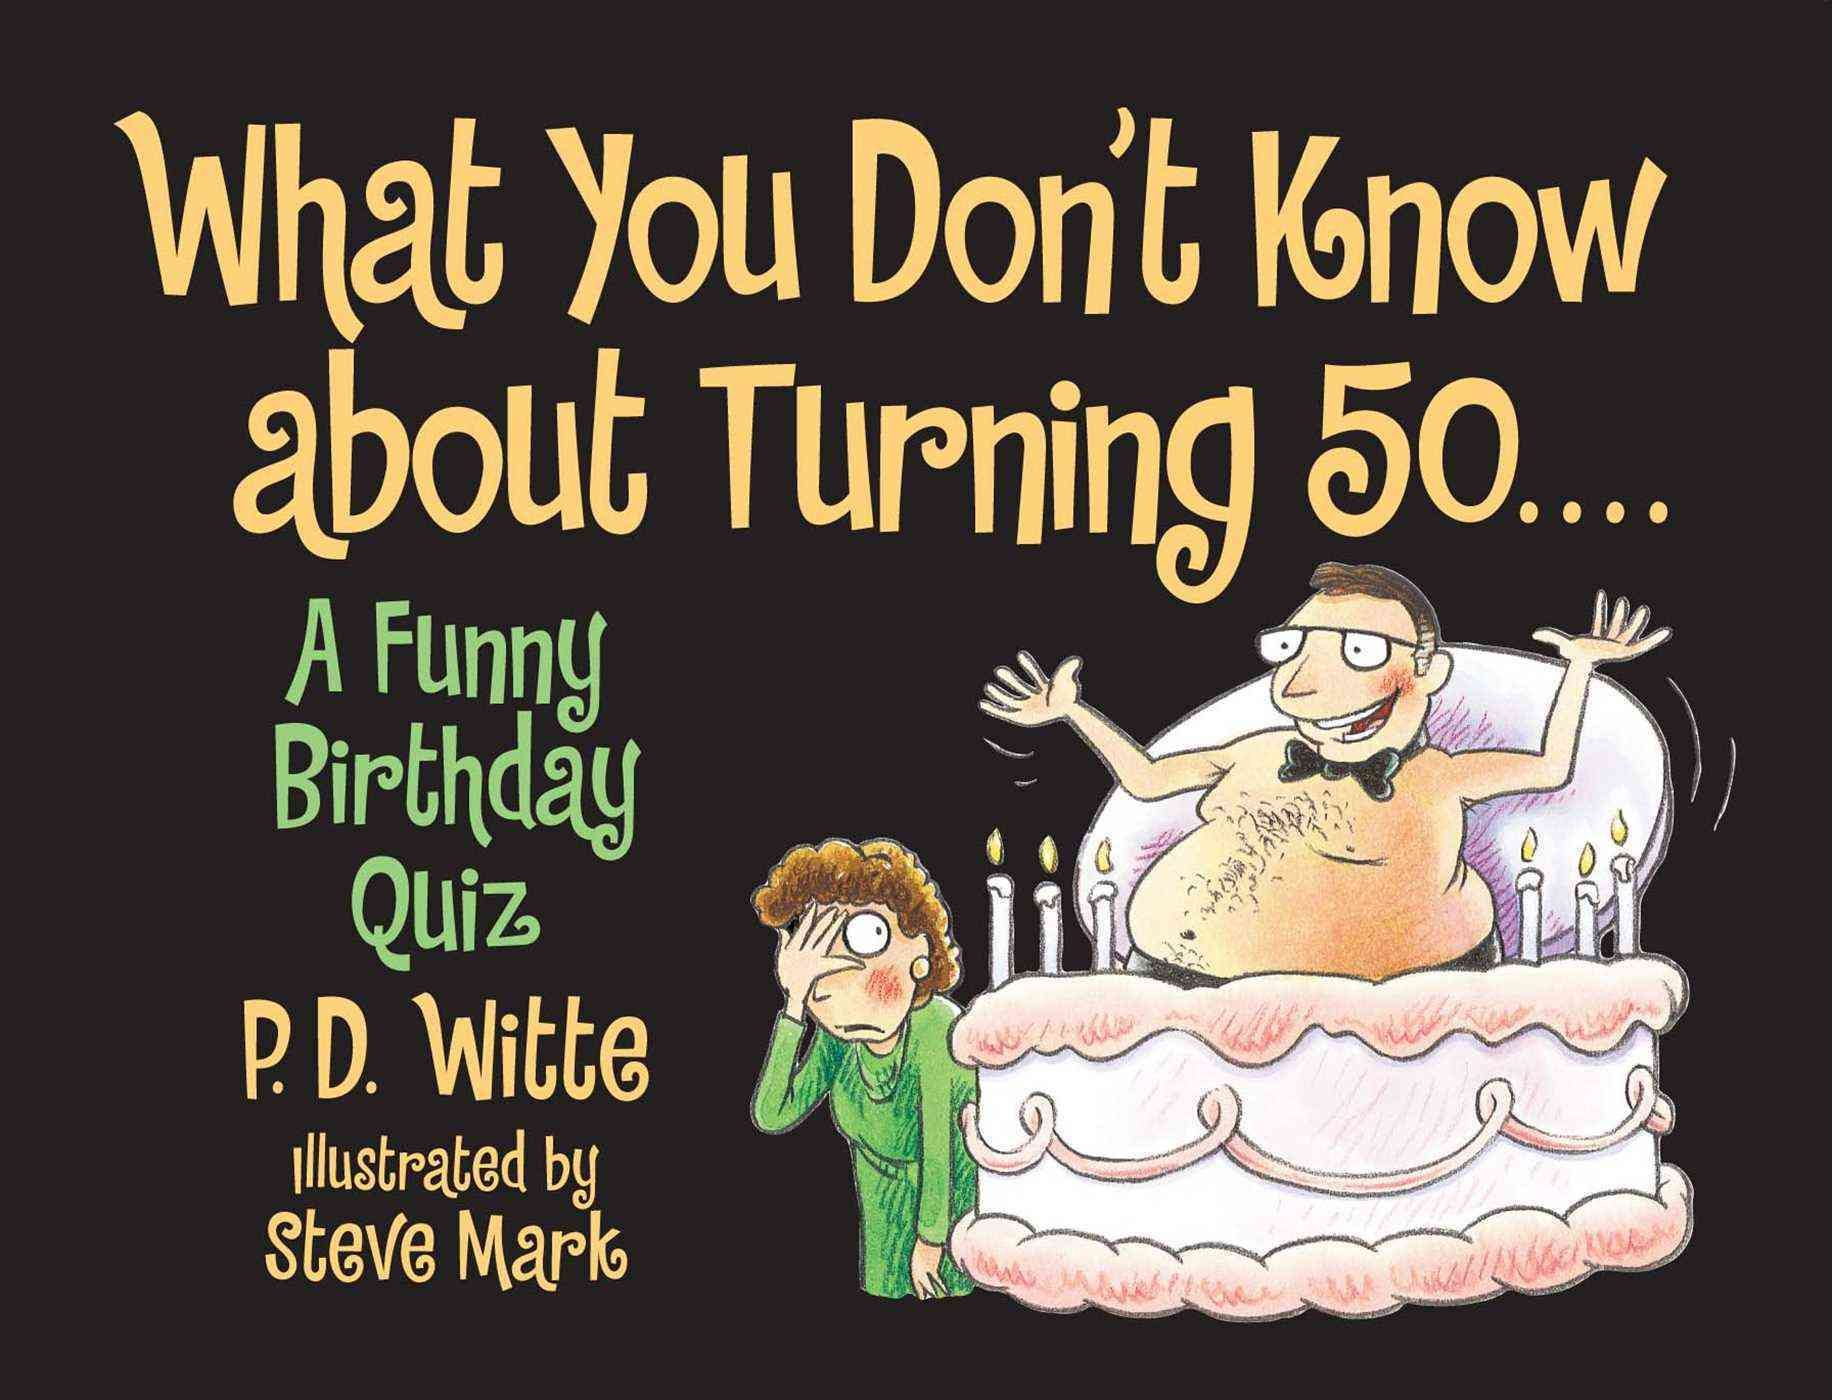 What You Don't Know About Turning 50: A Funny Birthday